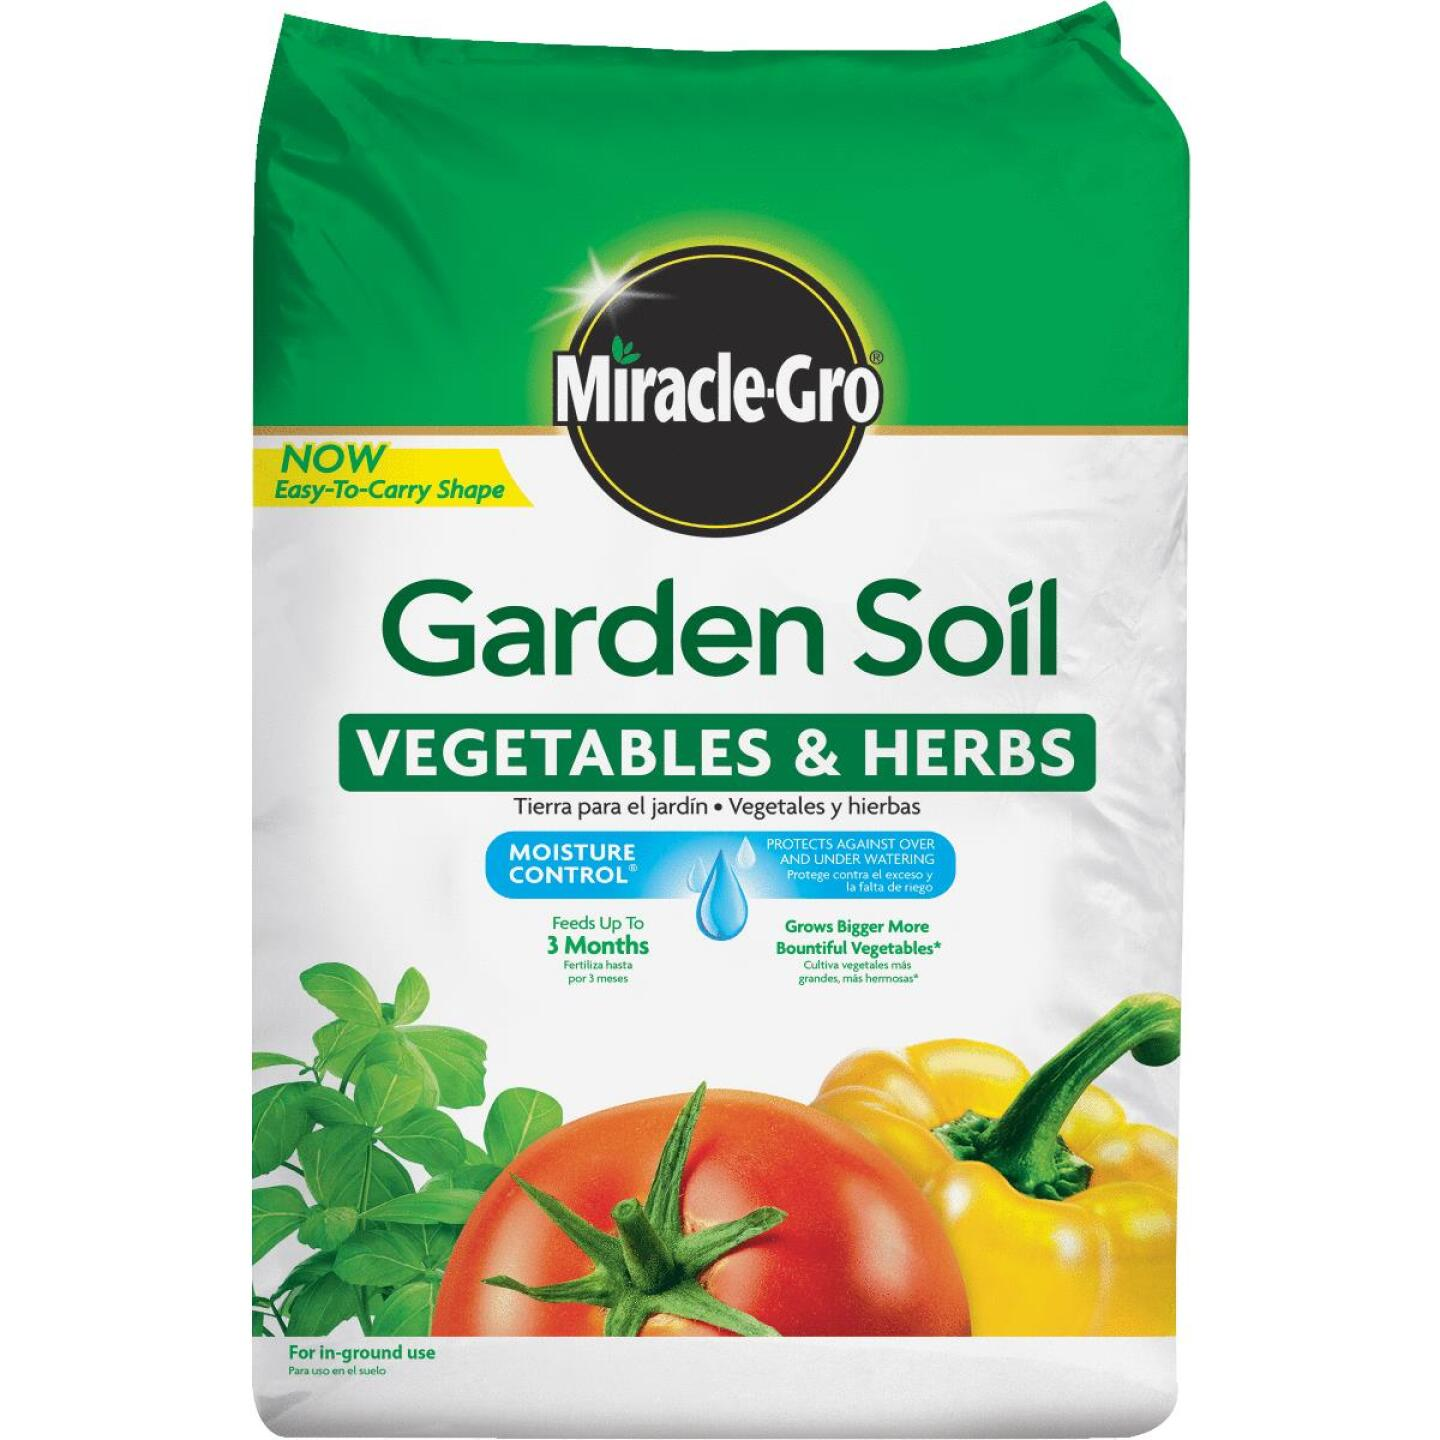 Miracle-Gro 1.5 Cu. Ft. 49 Lb. In-Ground Vegetables, Herbs Garden Soil Image 1